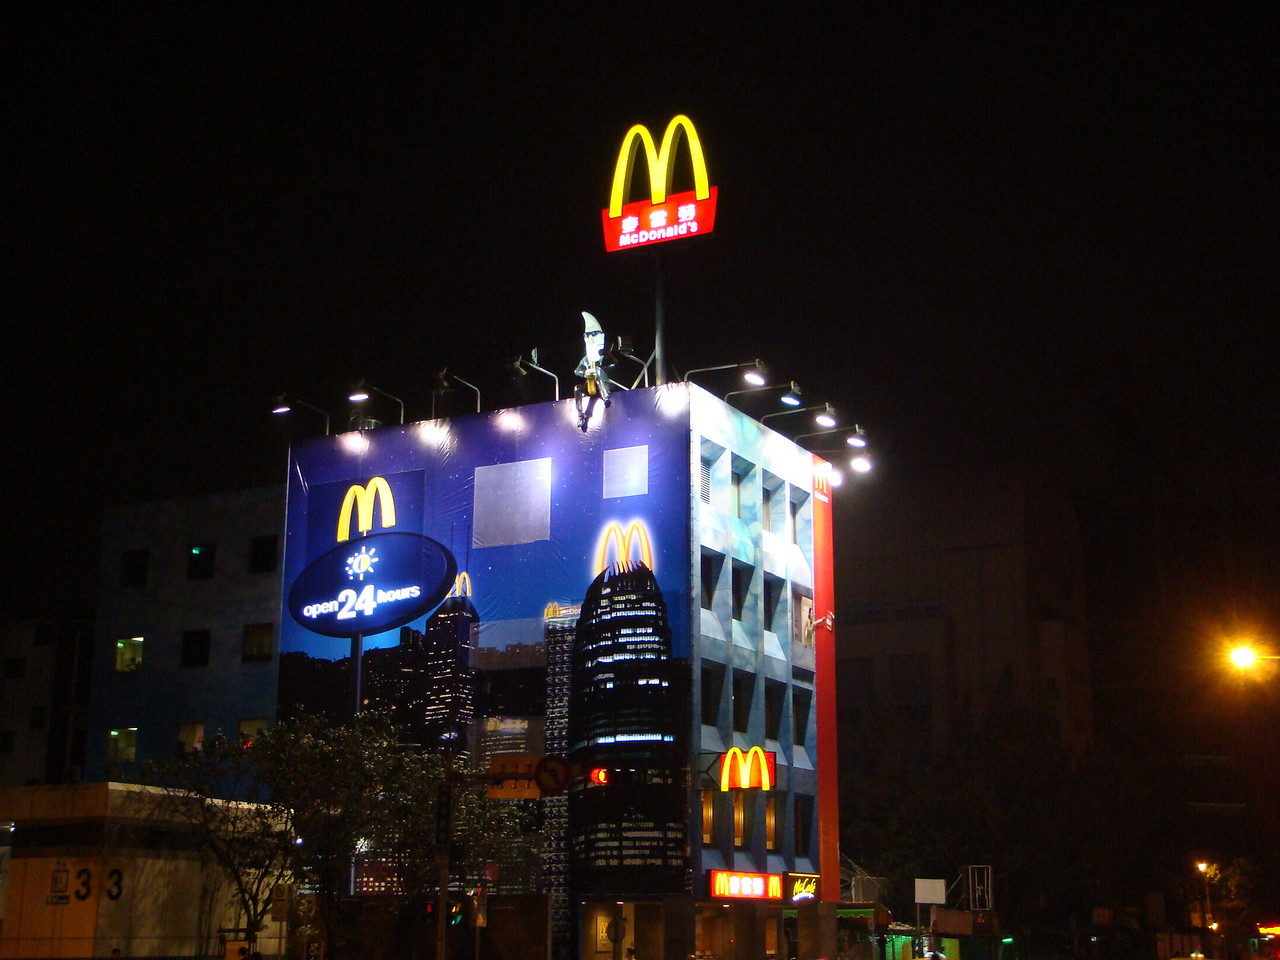 Outside McDonalds building in Taipei, Taiwan